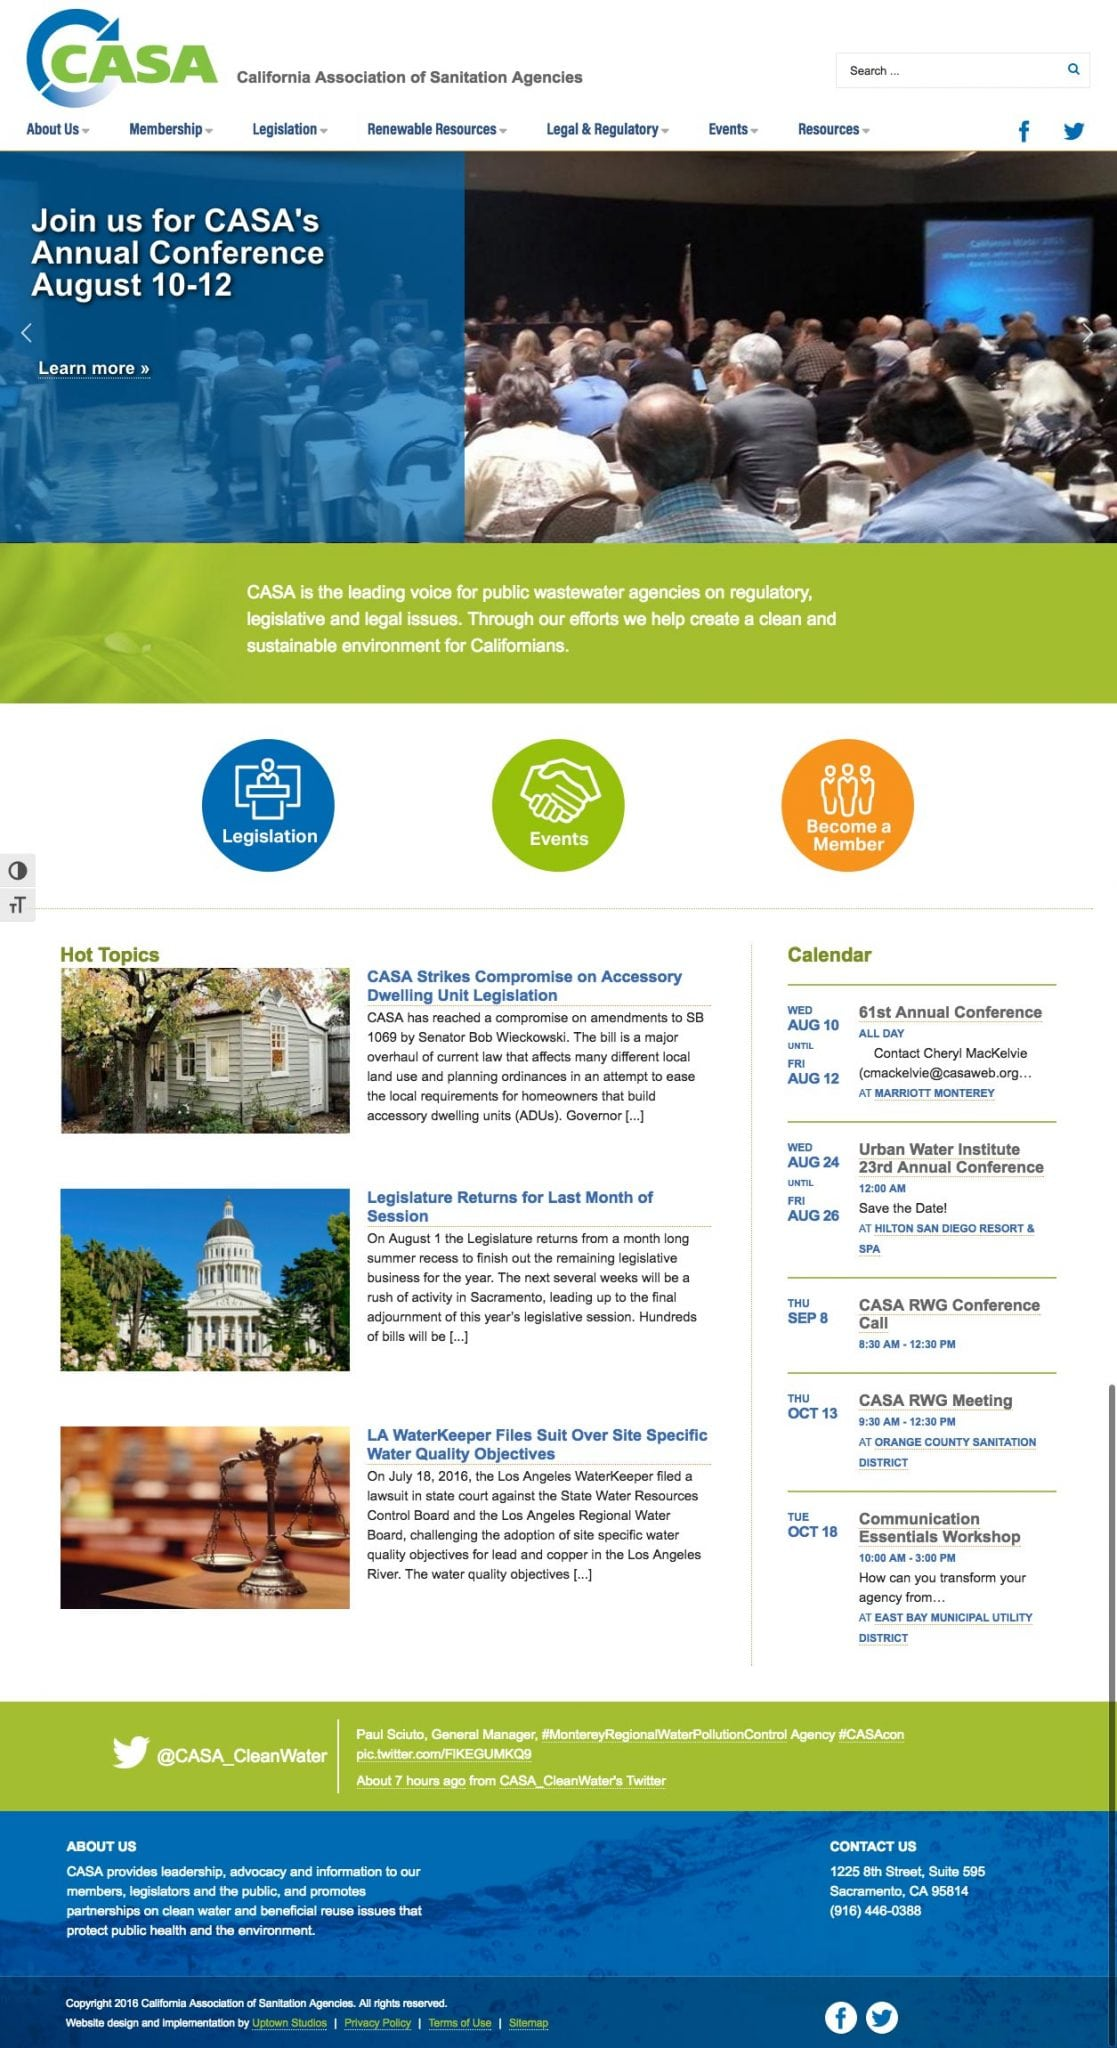 A screenshot of the CASA website